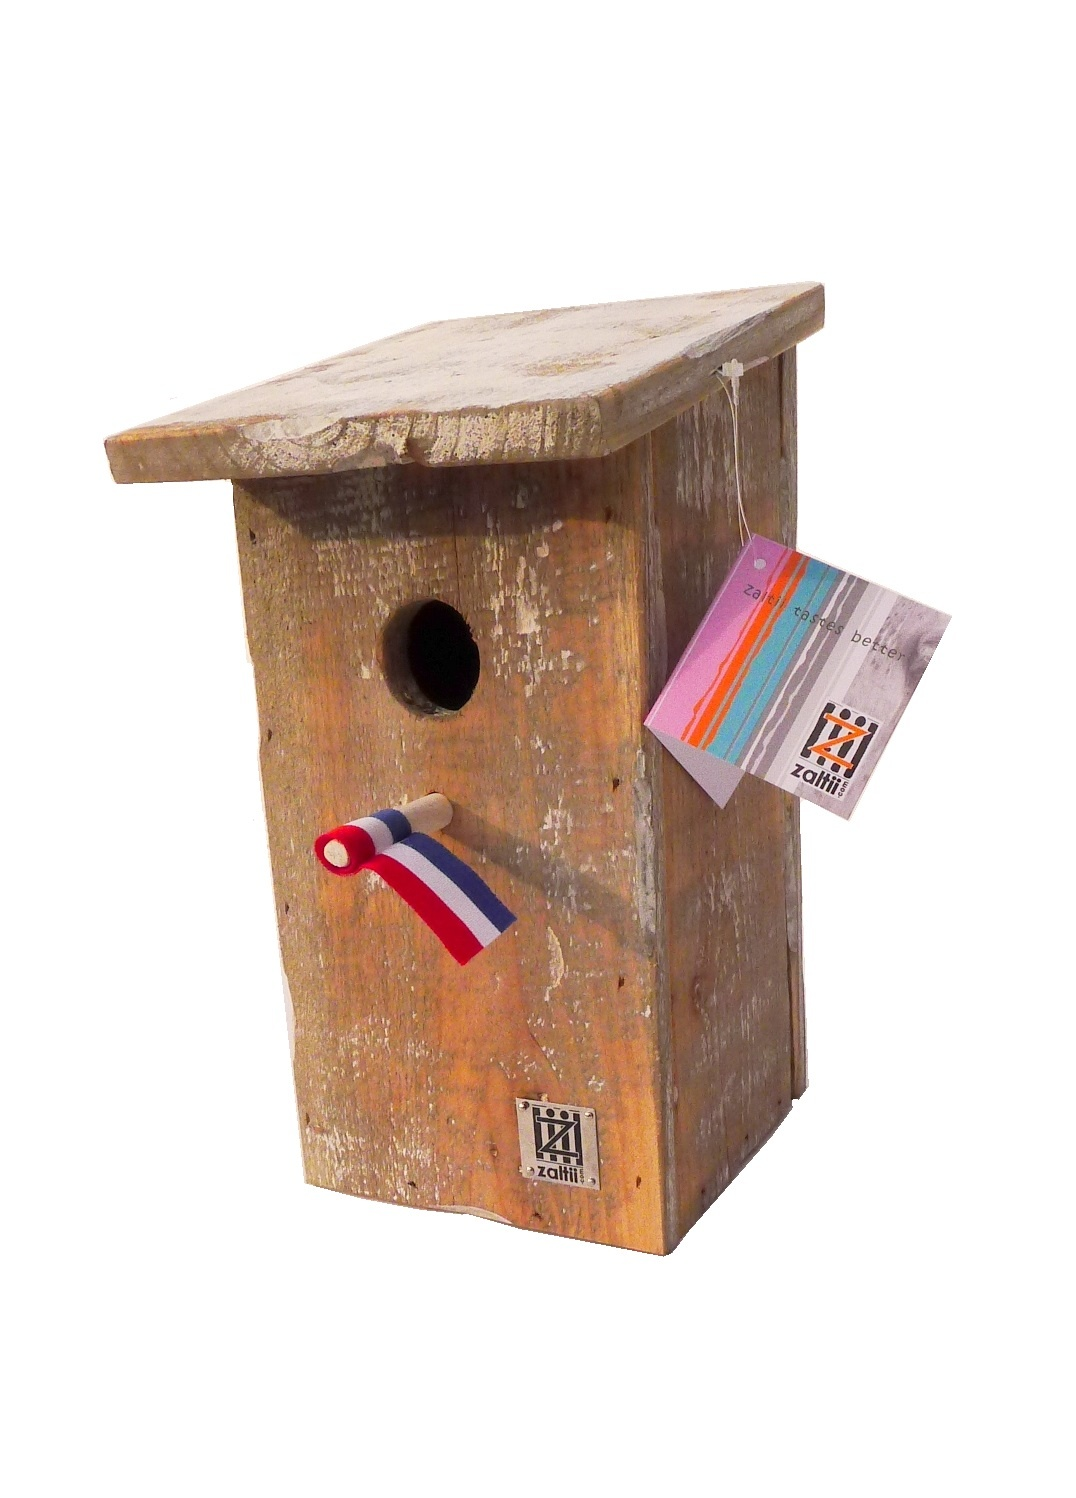 birdhouse old dutch StB skew roof-1